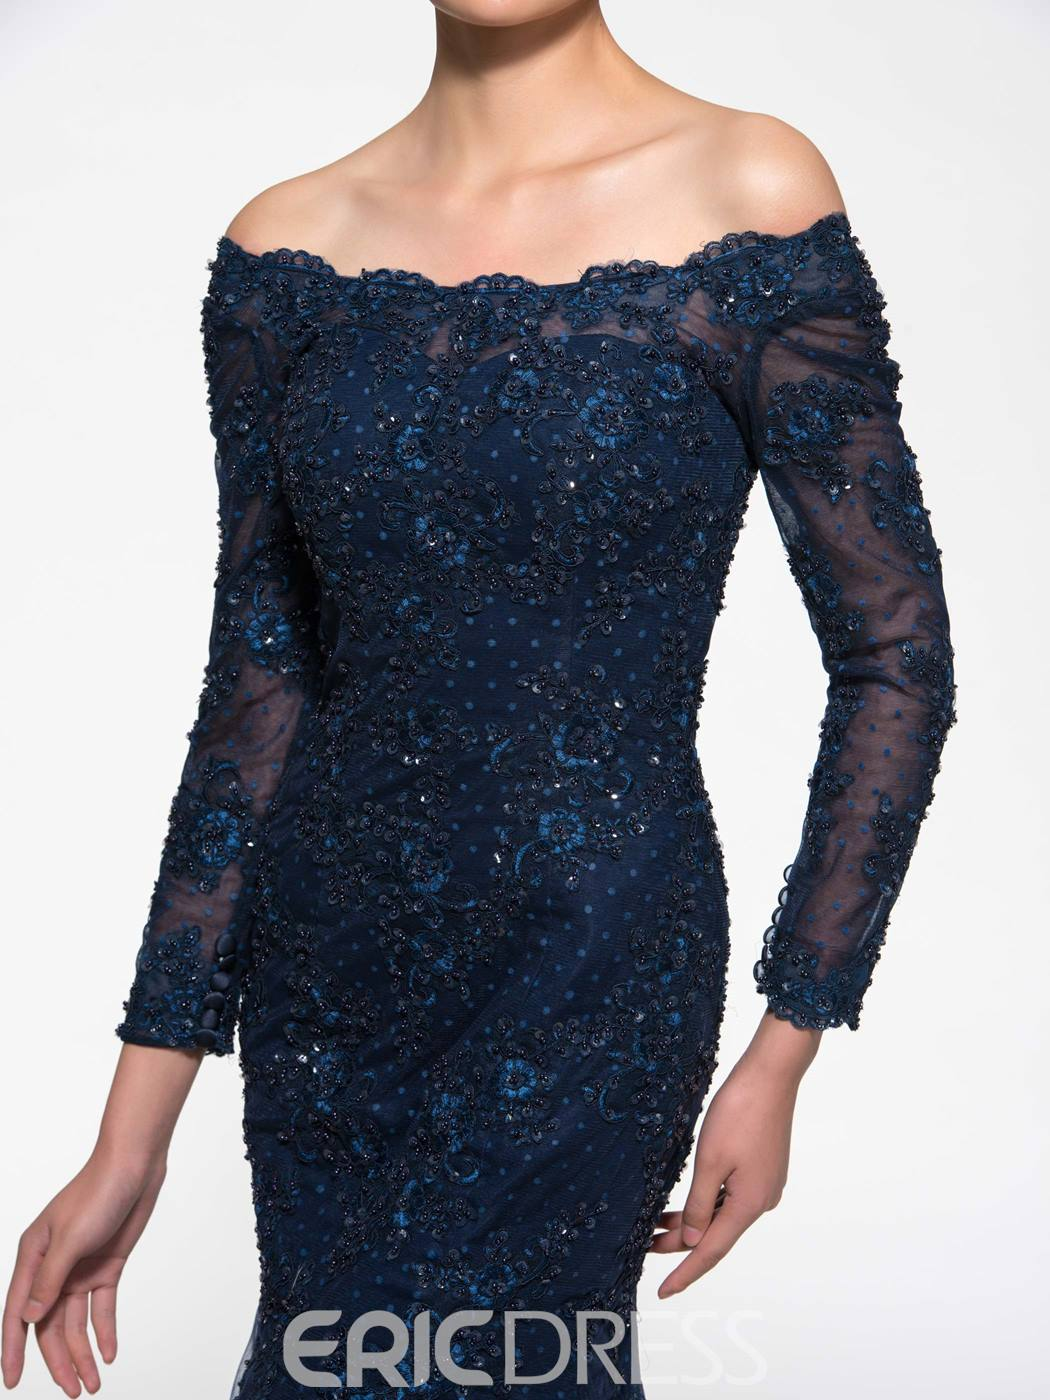 Ericdress Off the Shoulder Mermaid Mother of the Bride Dress with Sleeves